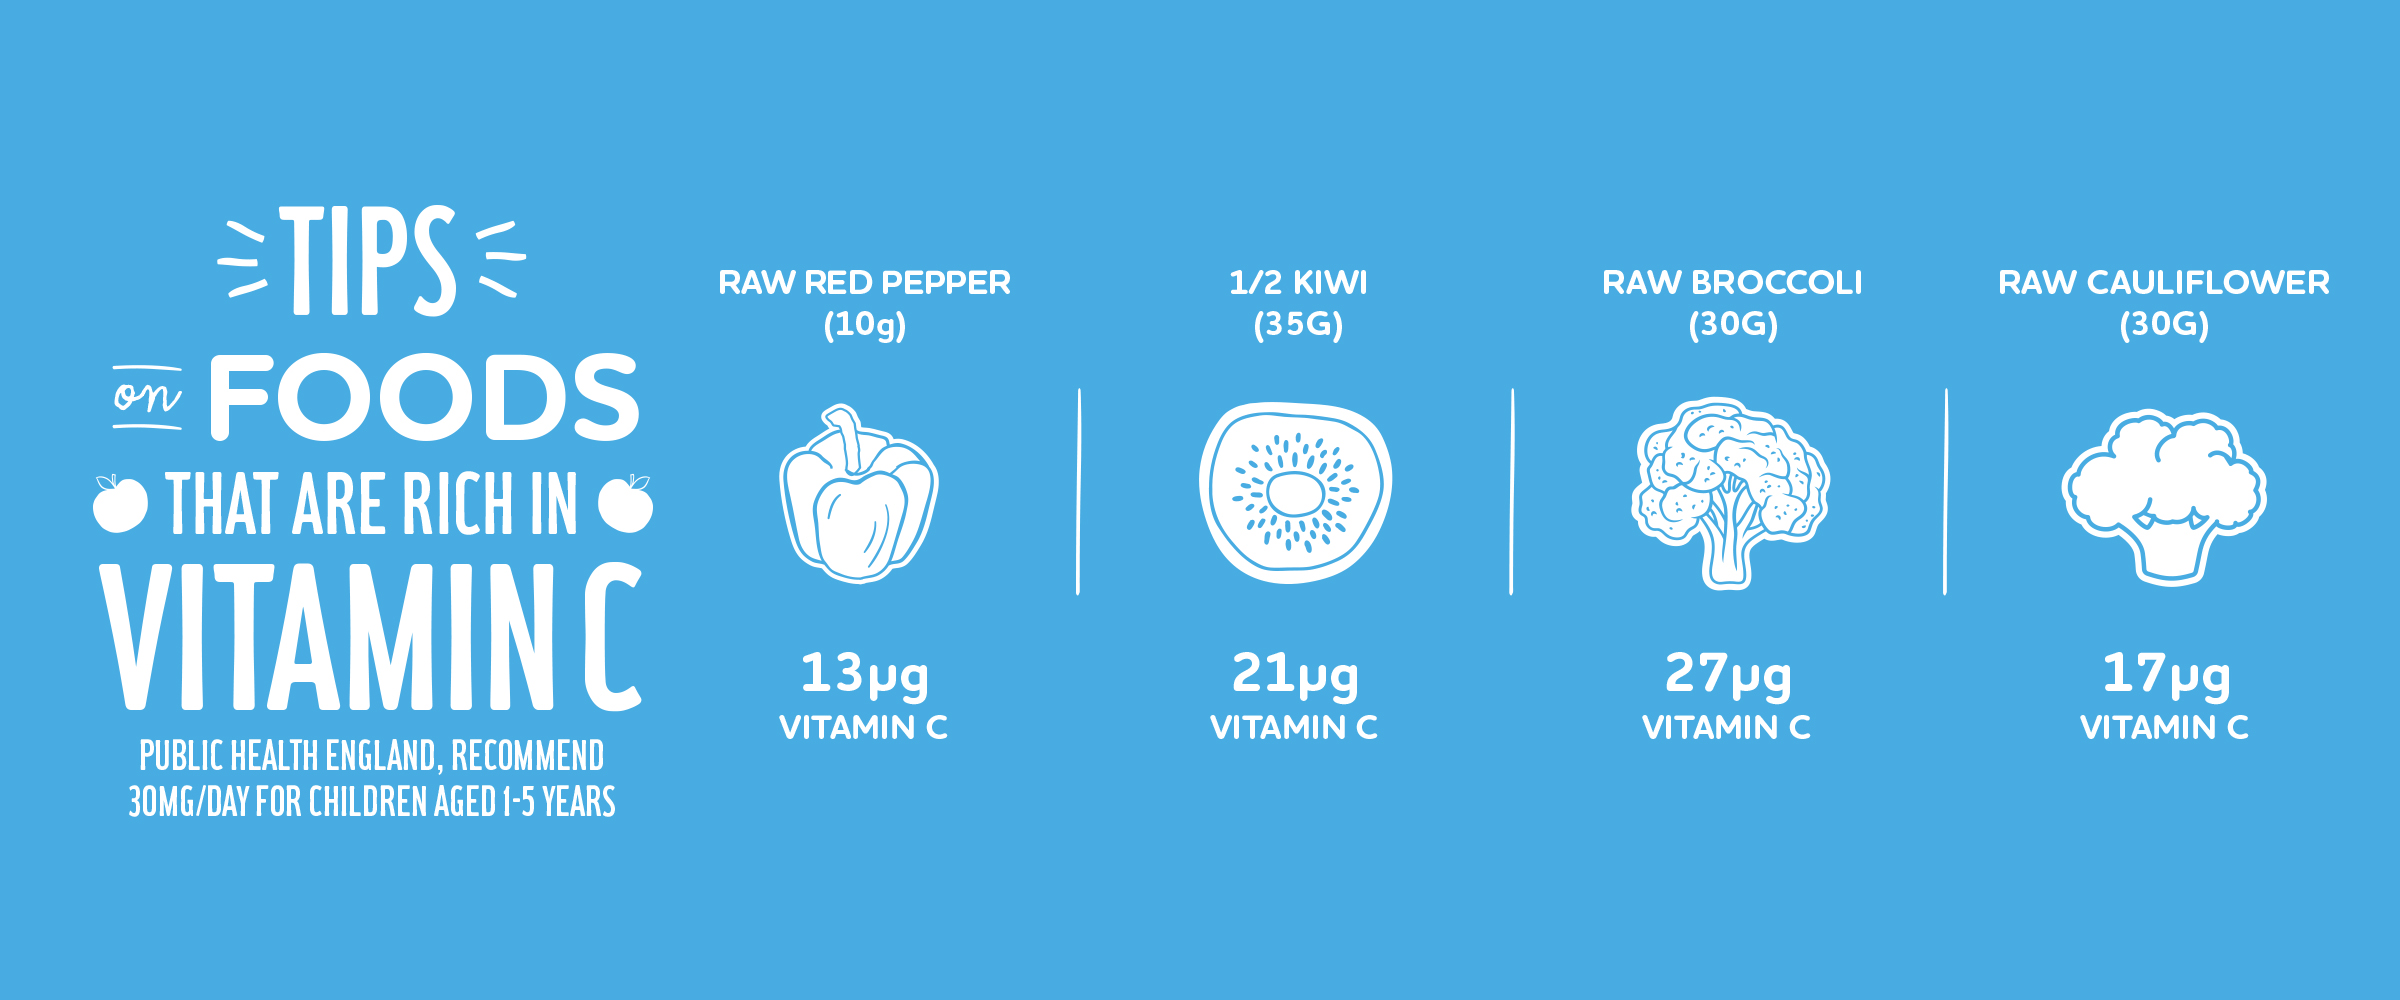 Tips on foods that are rich in Vitamin C infographic